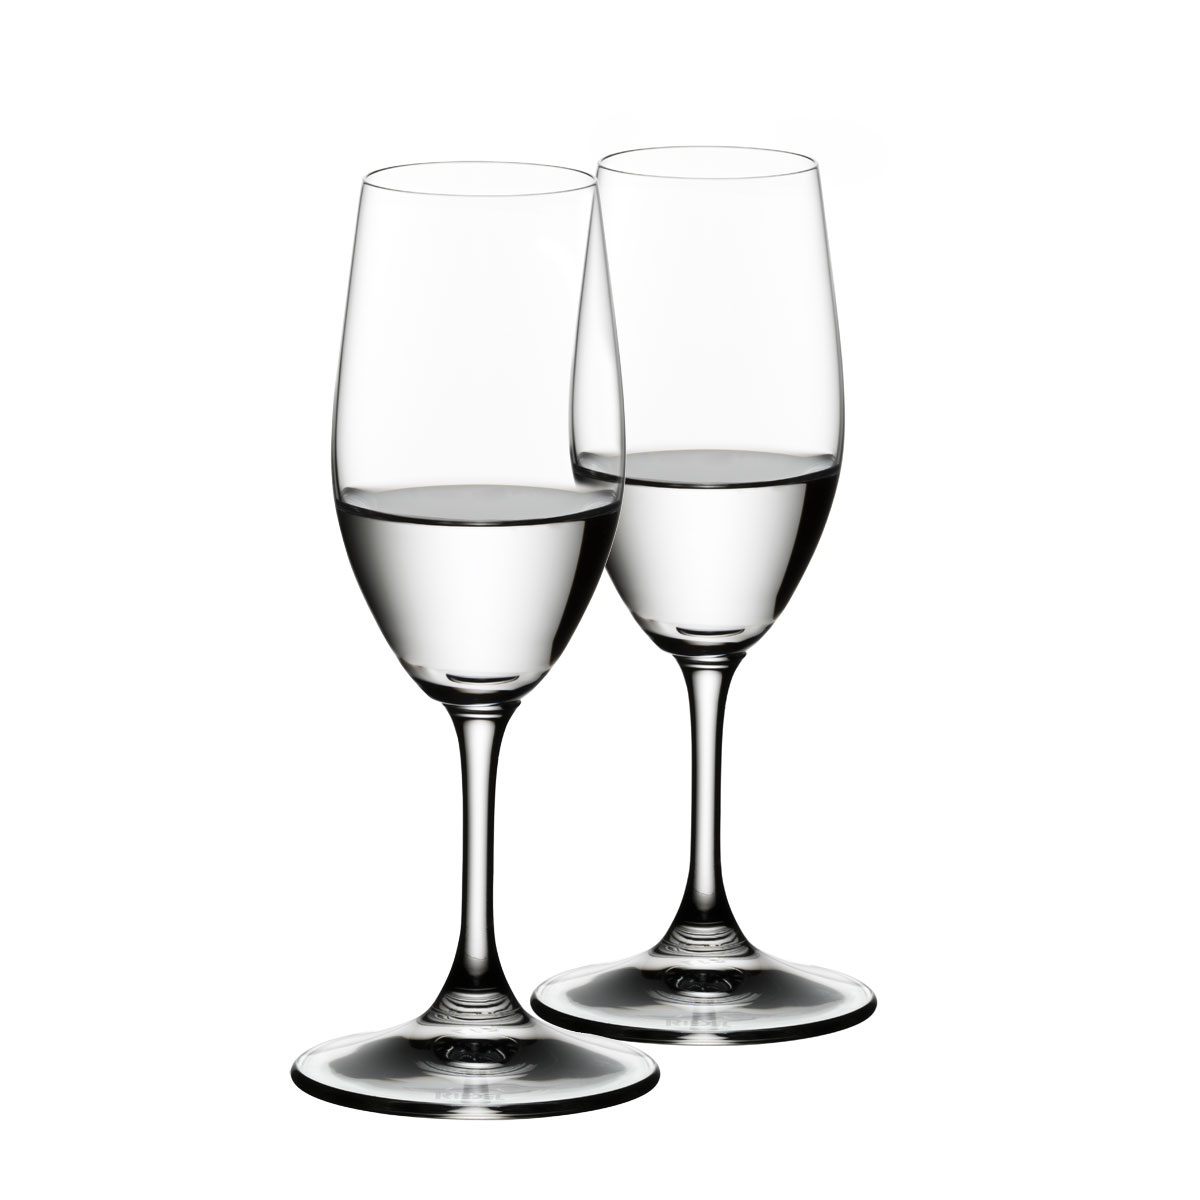 Riedel Ouverture, Spirits Crystal Glasses, Pair